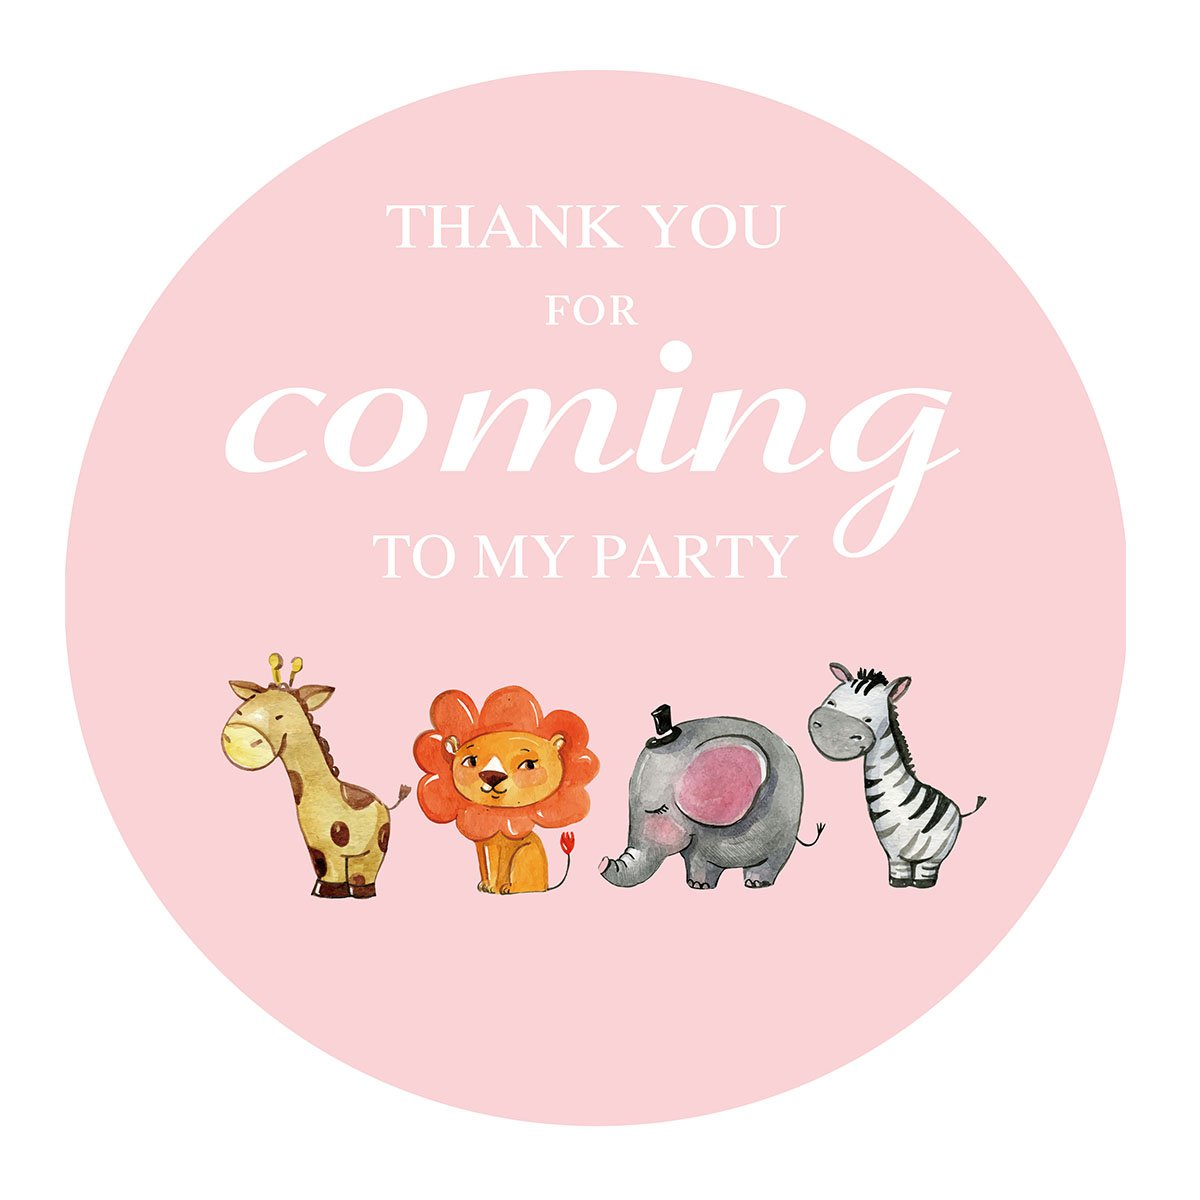 MAGJUCHE Pink Jungle Animals Thank You Stickers, Girl Safari Zoo Animal Birthday Baby Shower Party Favor Labels, 2 Inch, 40-Pack